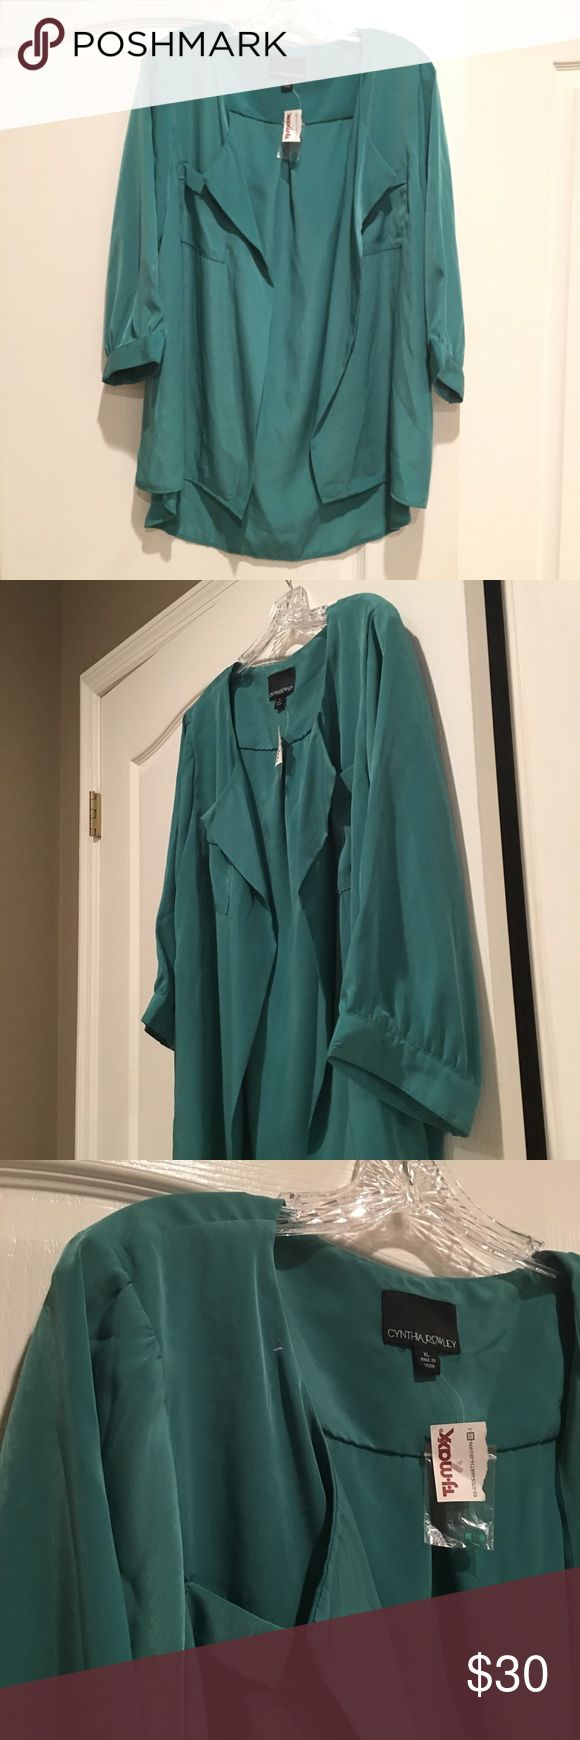 NWT Cynthia Rowley Open Front Blouse NWT but just has the TJ Max Tag and extra buttons. Color is a green/ teal. Cynthia Rowley Tops Blouses